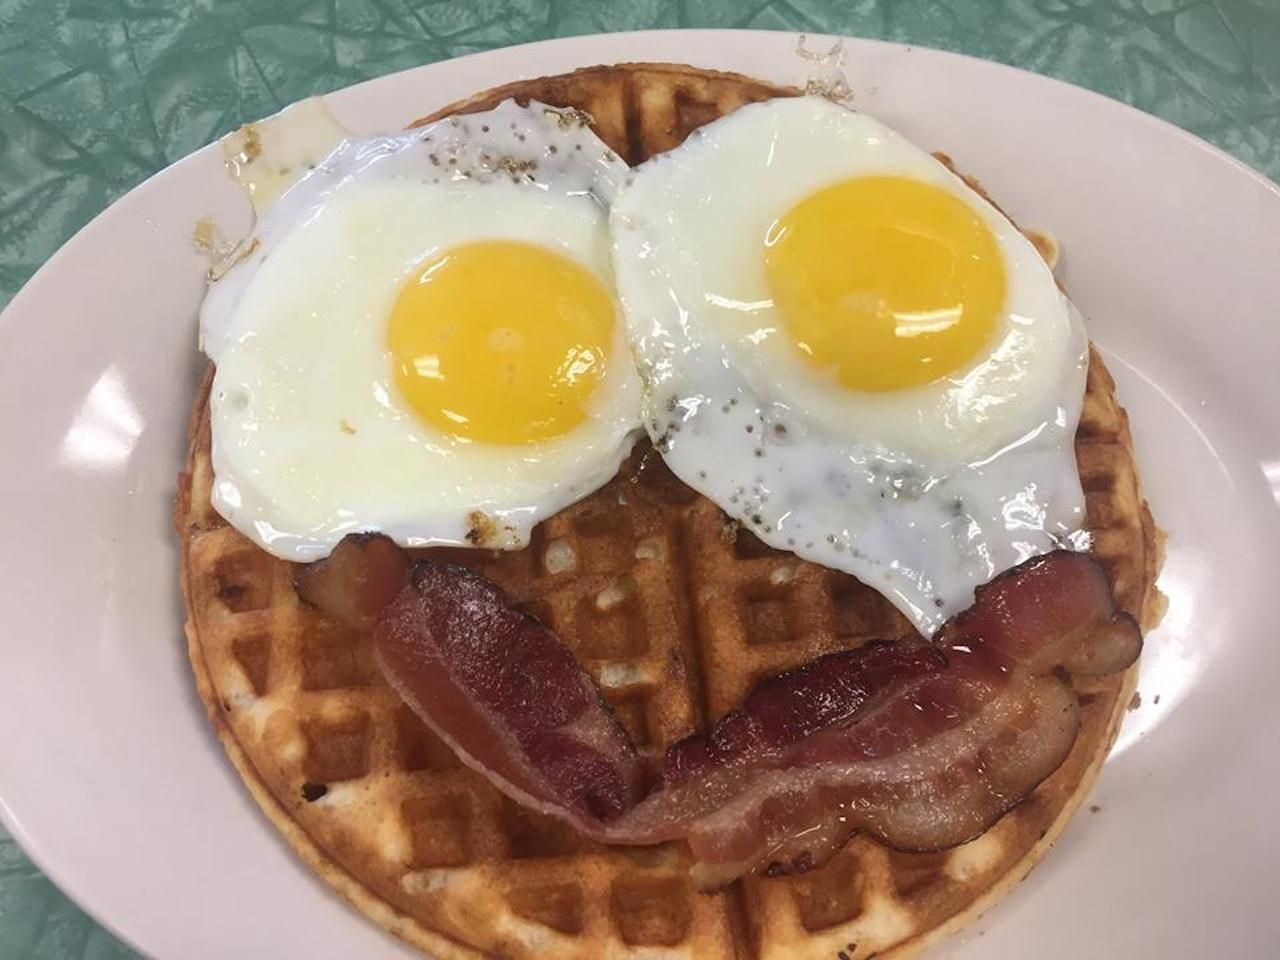 Tastee Diner overeasy eggs and a strip of bacon arranged on top of a waffle like a smiley face